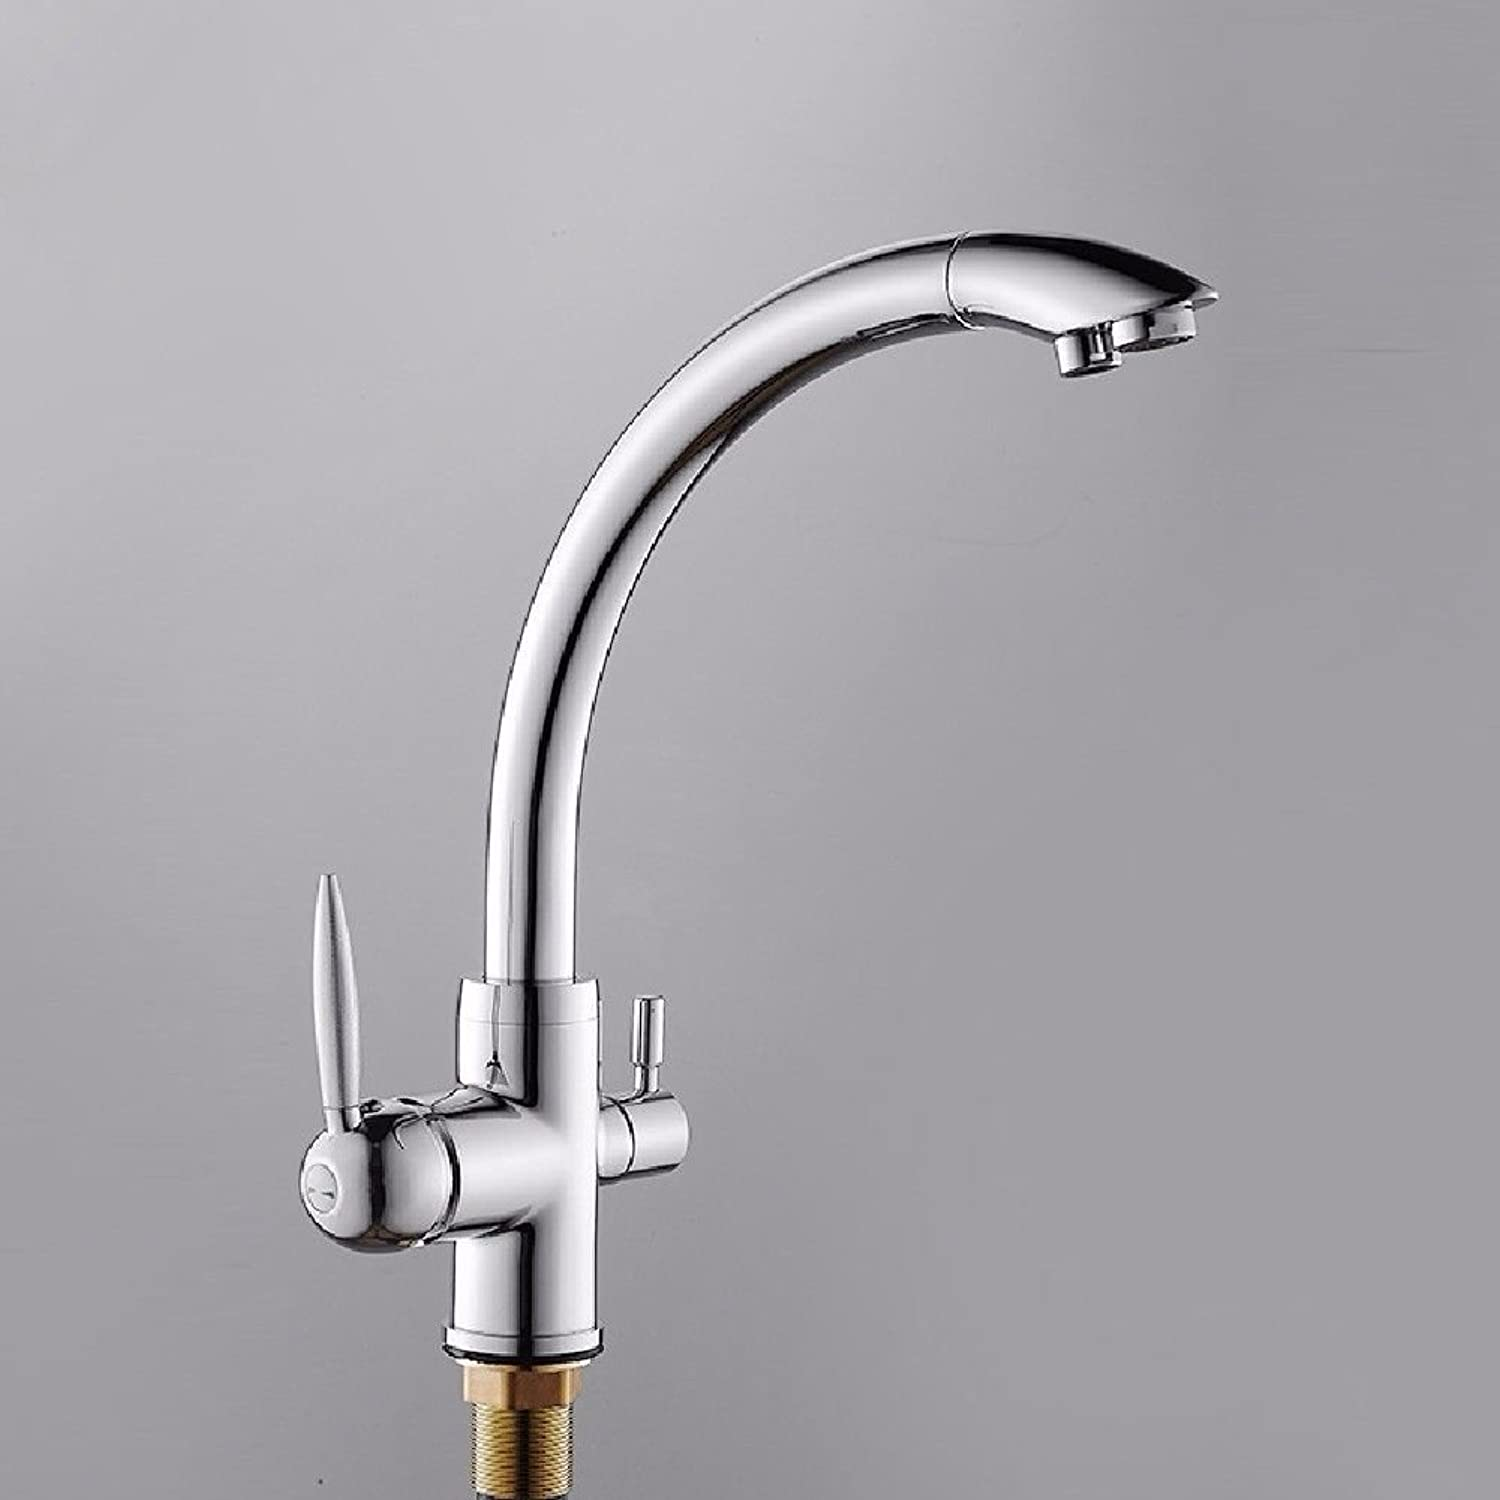 Lpophy Bathroom Sink Mixer Taps Faucet Bath Waterfall Cold and Hot Water Tap for Washroom Bathroom and Kitchen Copper Hot and Cold Copper Double-Grade Water Purification